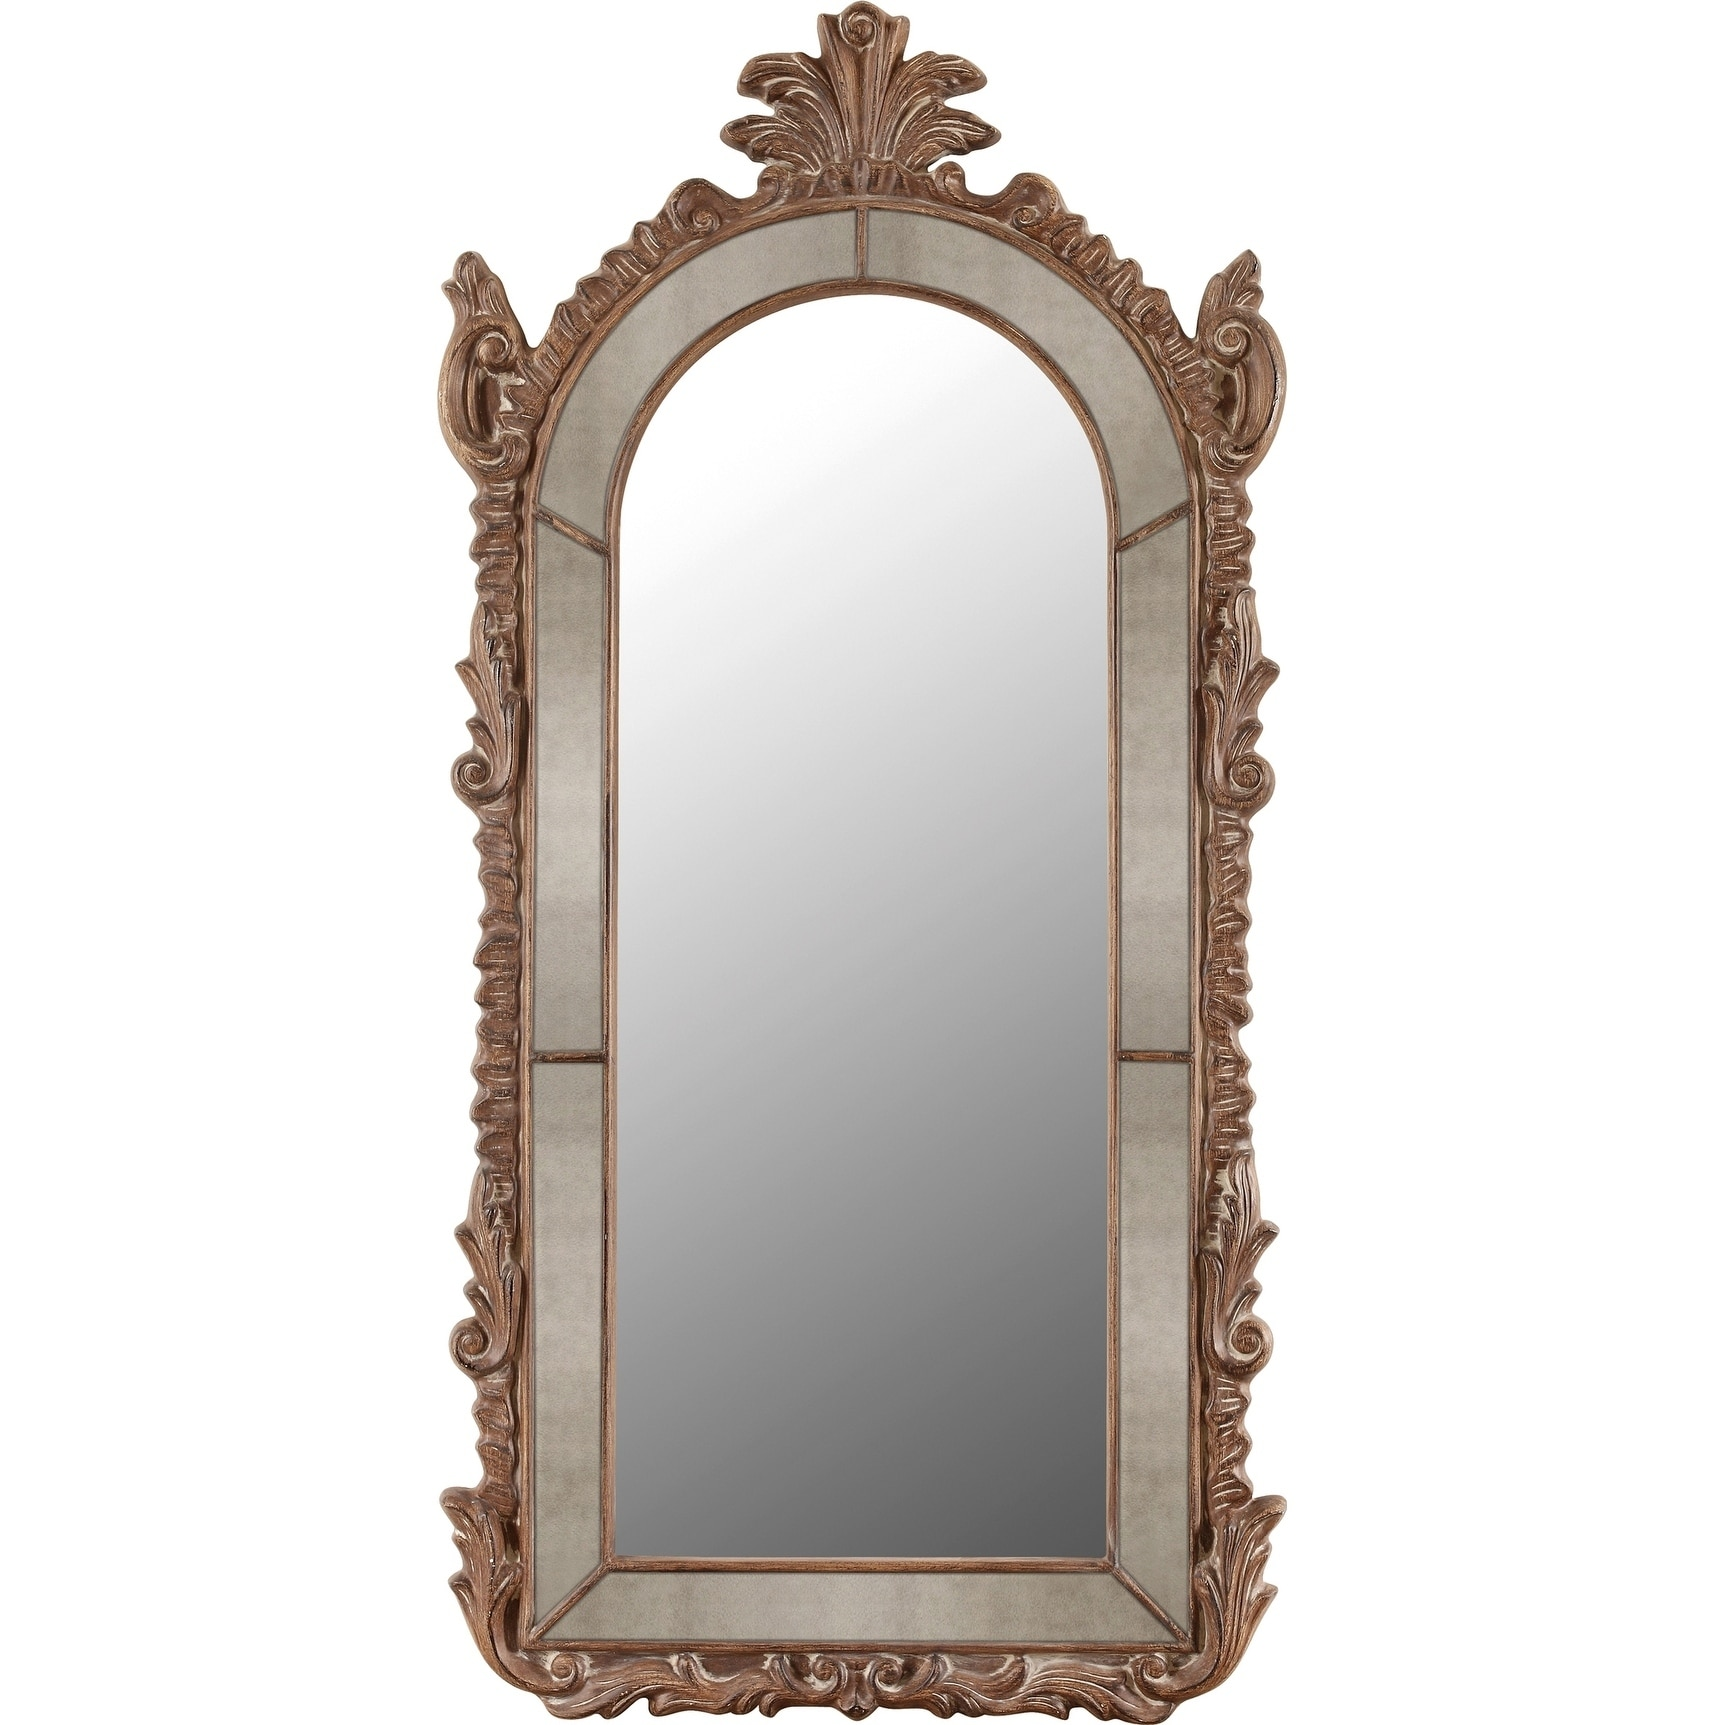 Antique Furniture Apprehensive Antique Wooden Wall Hanging Mirror Great Vintage Condition Online Discount Antiques